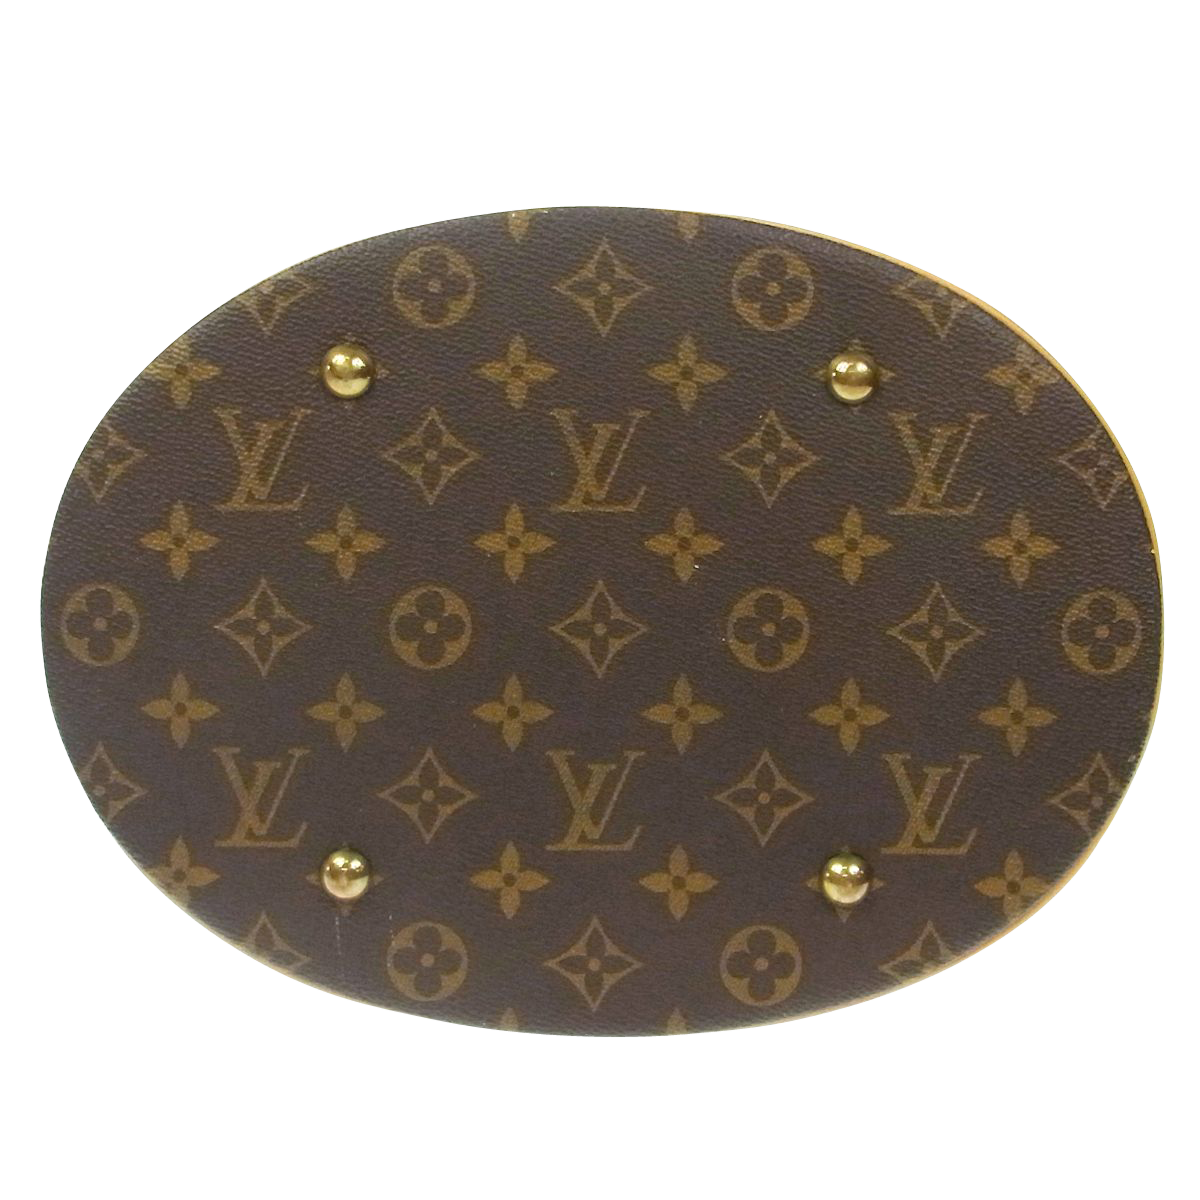 Sac Louis Vuitton Bucklet GM